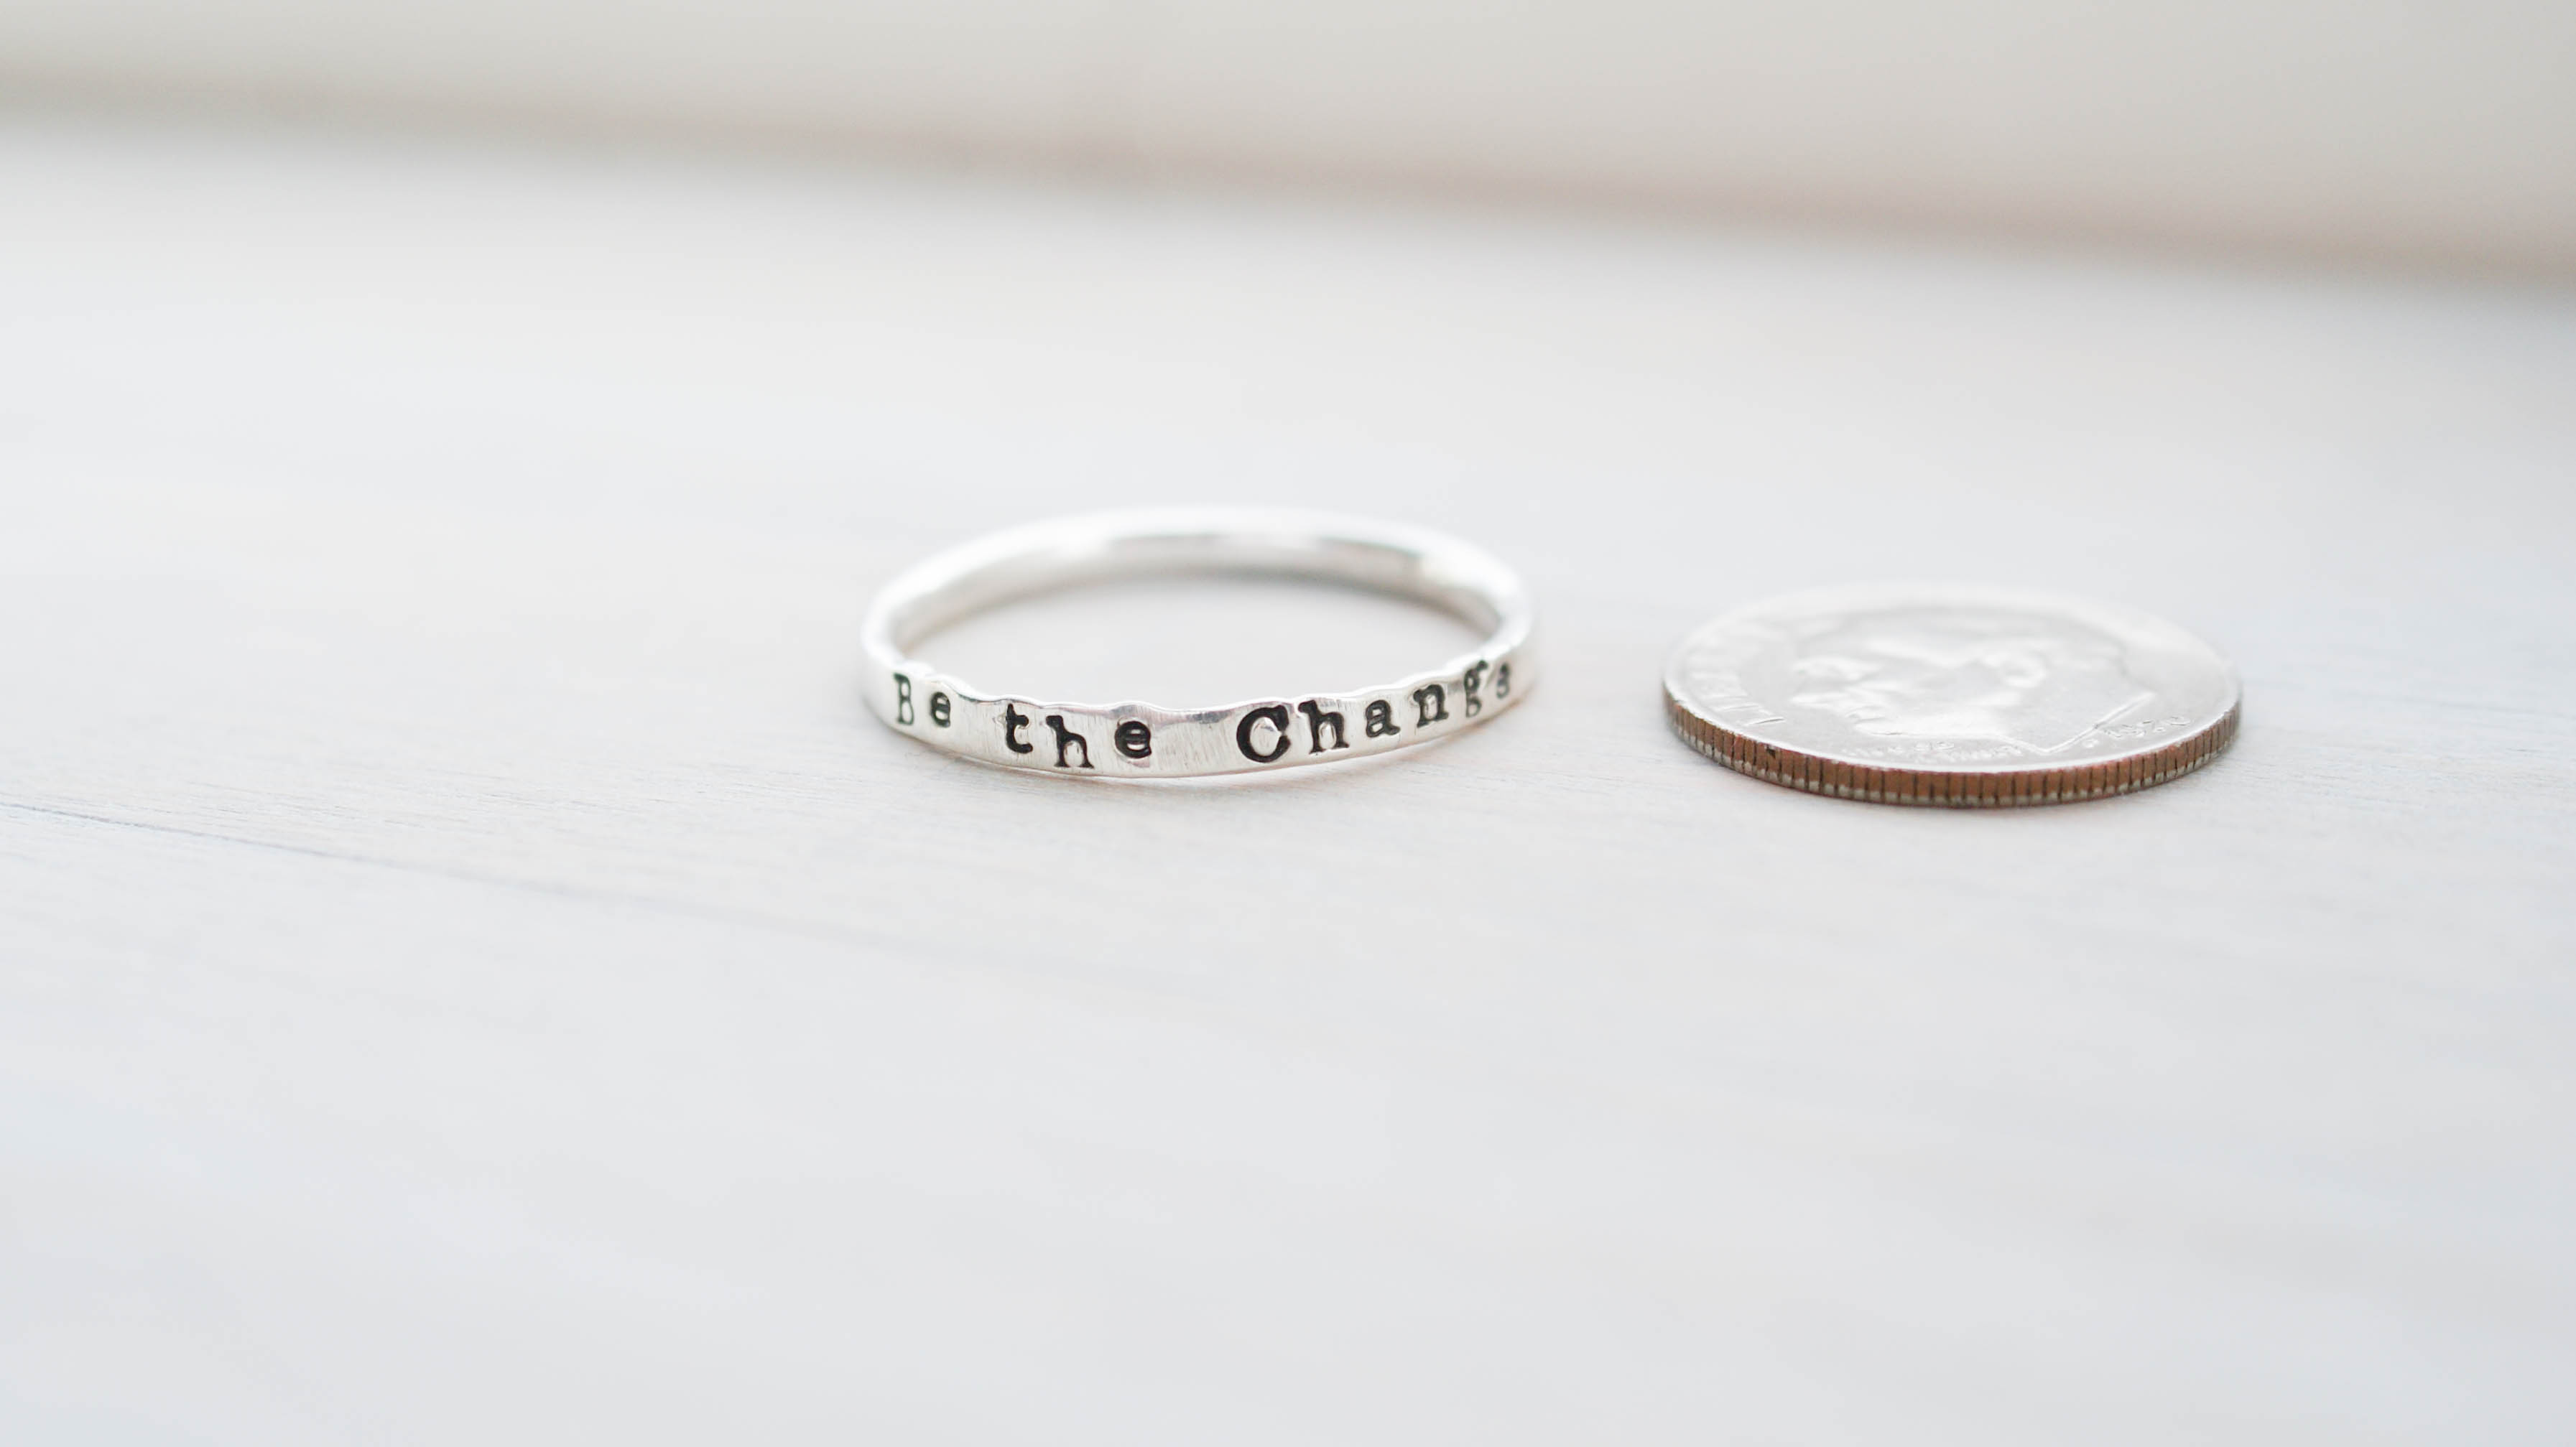 Be the Change Jewelry